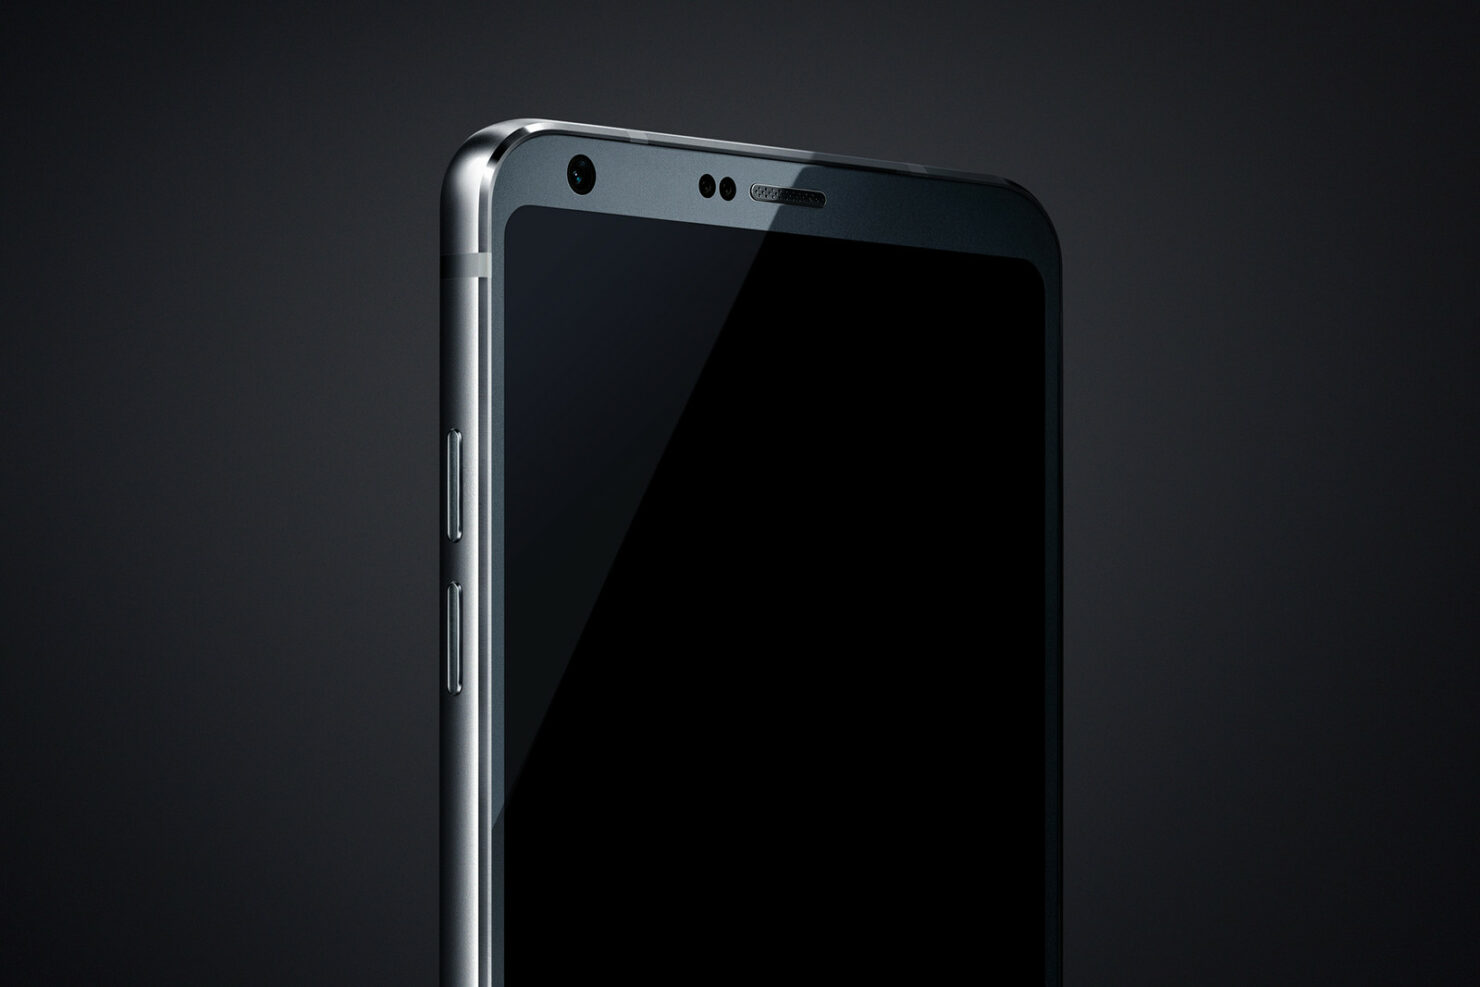 LG G6 water resistance or removable battery